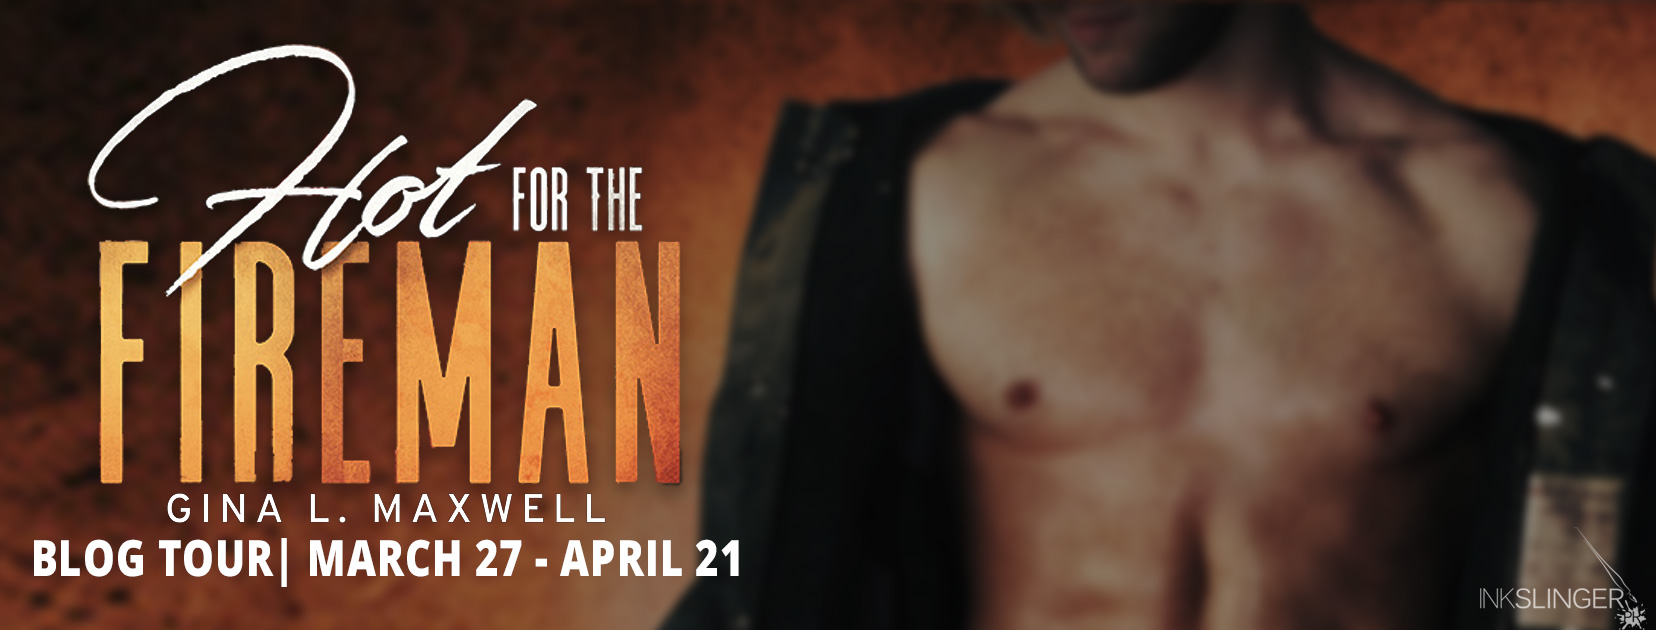 Blog Tour Review:  Hot for the Fireman by Gina L. Maxwell